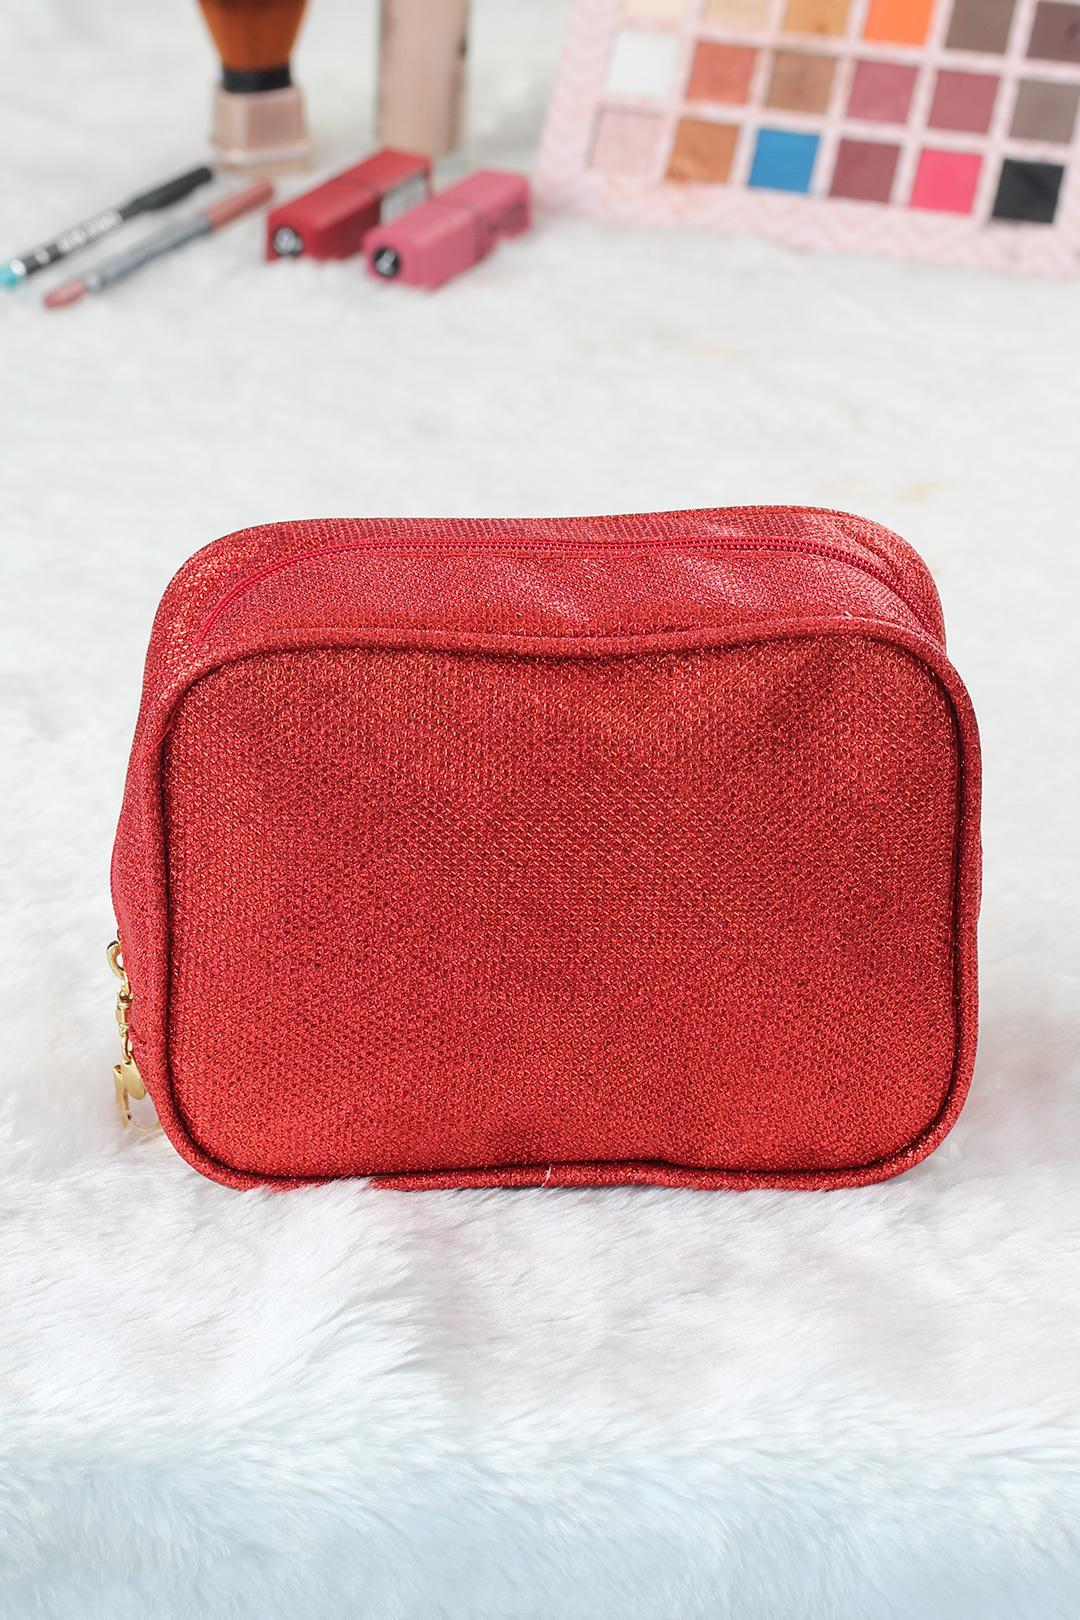 Women's Glitter Red Square Makeup Bag